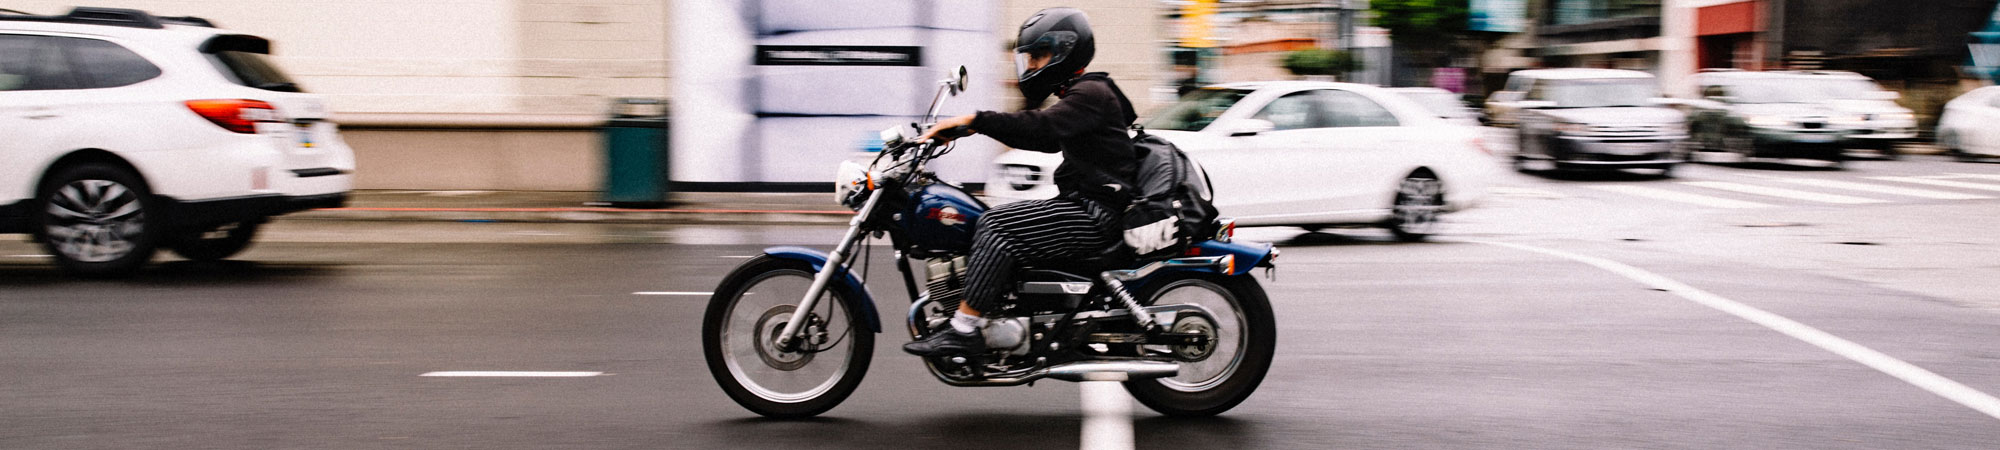 Motorcycle Accident Attorneys in Phoenix, AZ | Personal ...